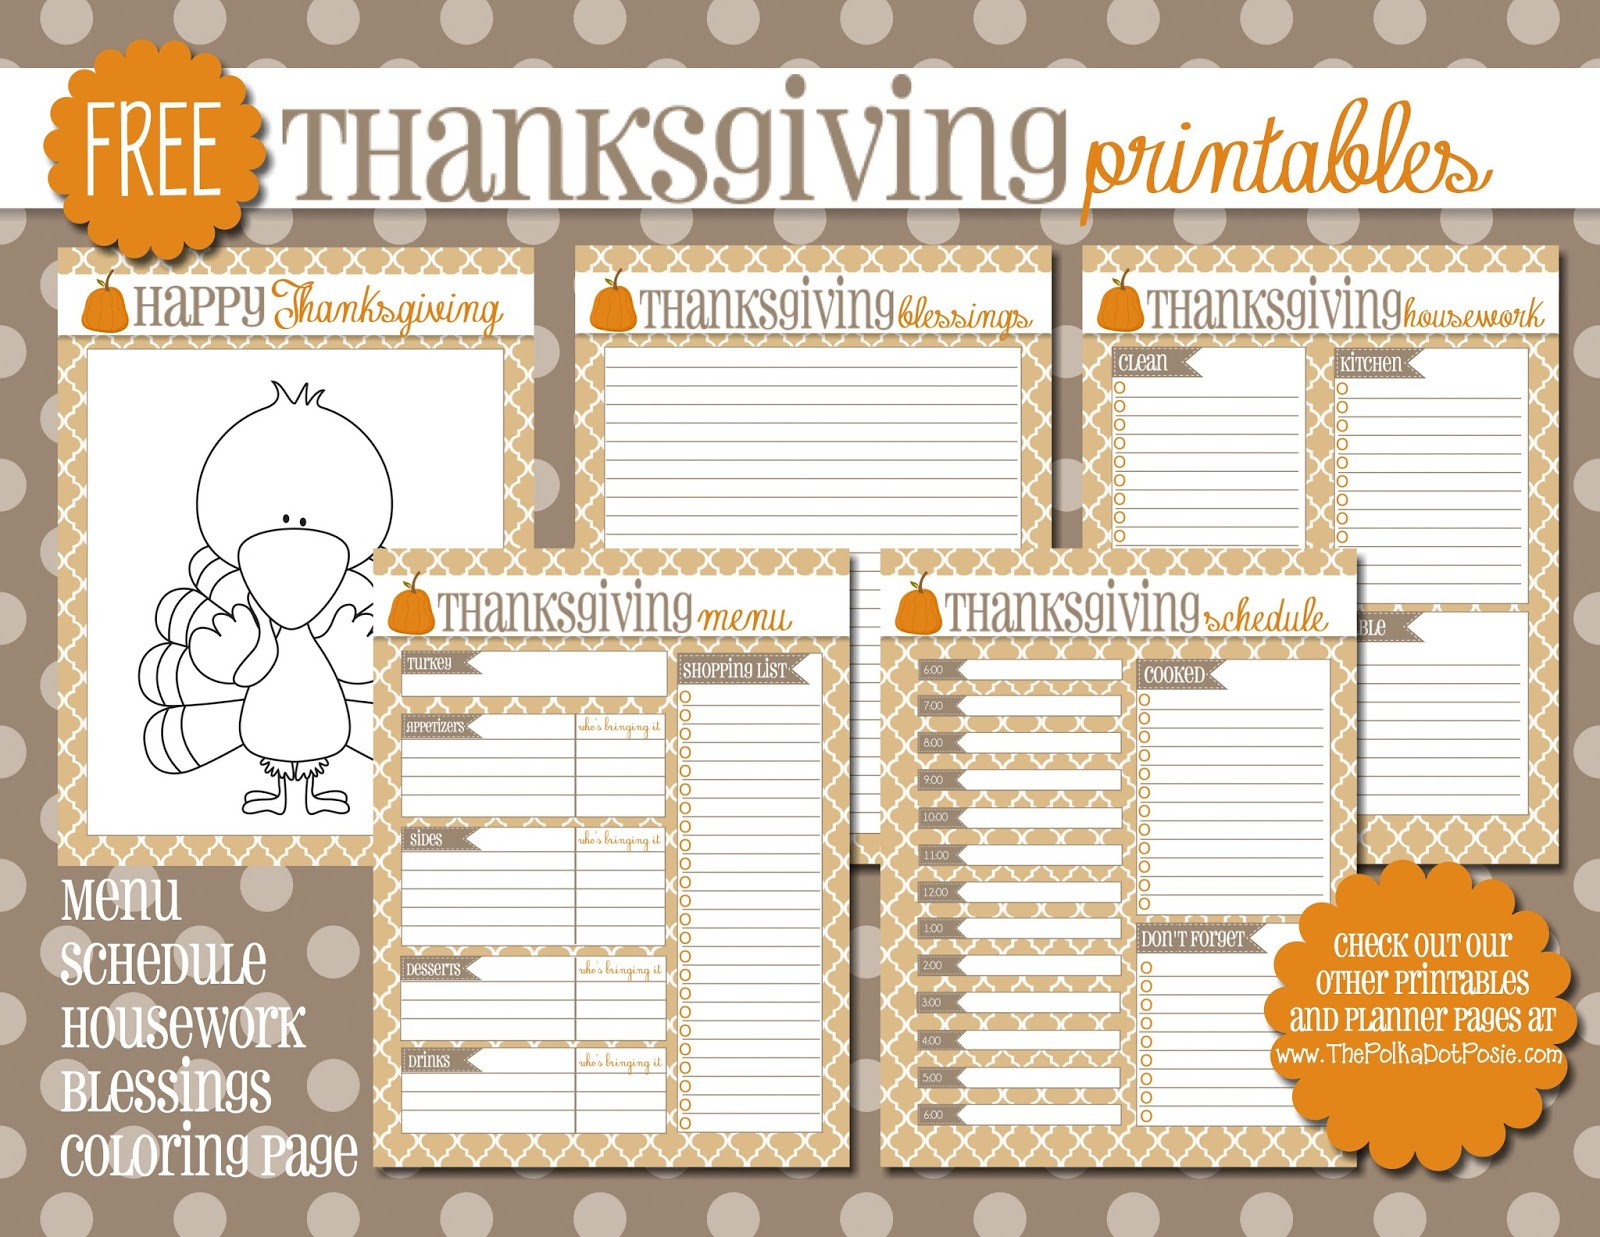 image relating to Thanksgiving Planner Printable named The Polka Dot Posie: Cost-free Thanksgiving Printables for your